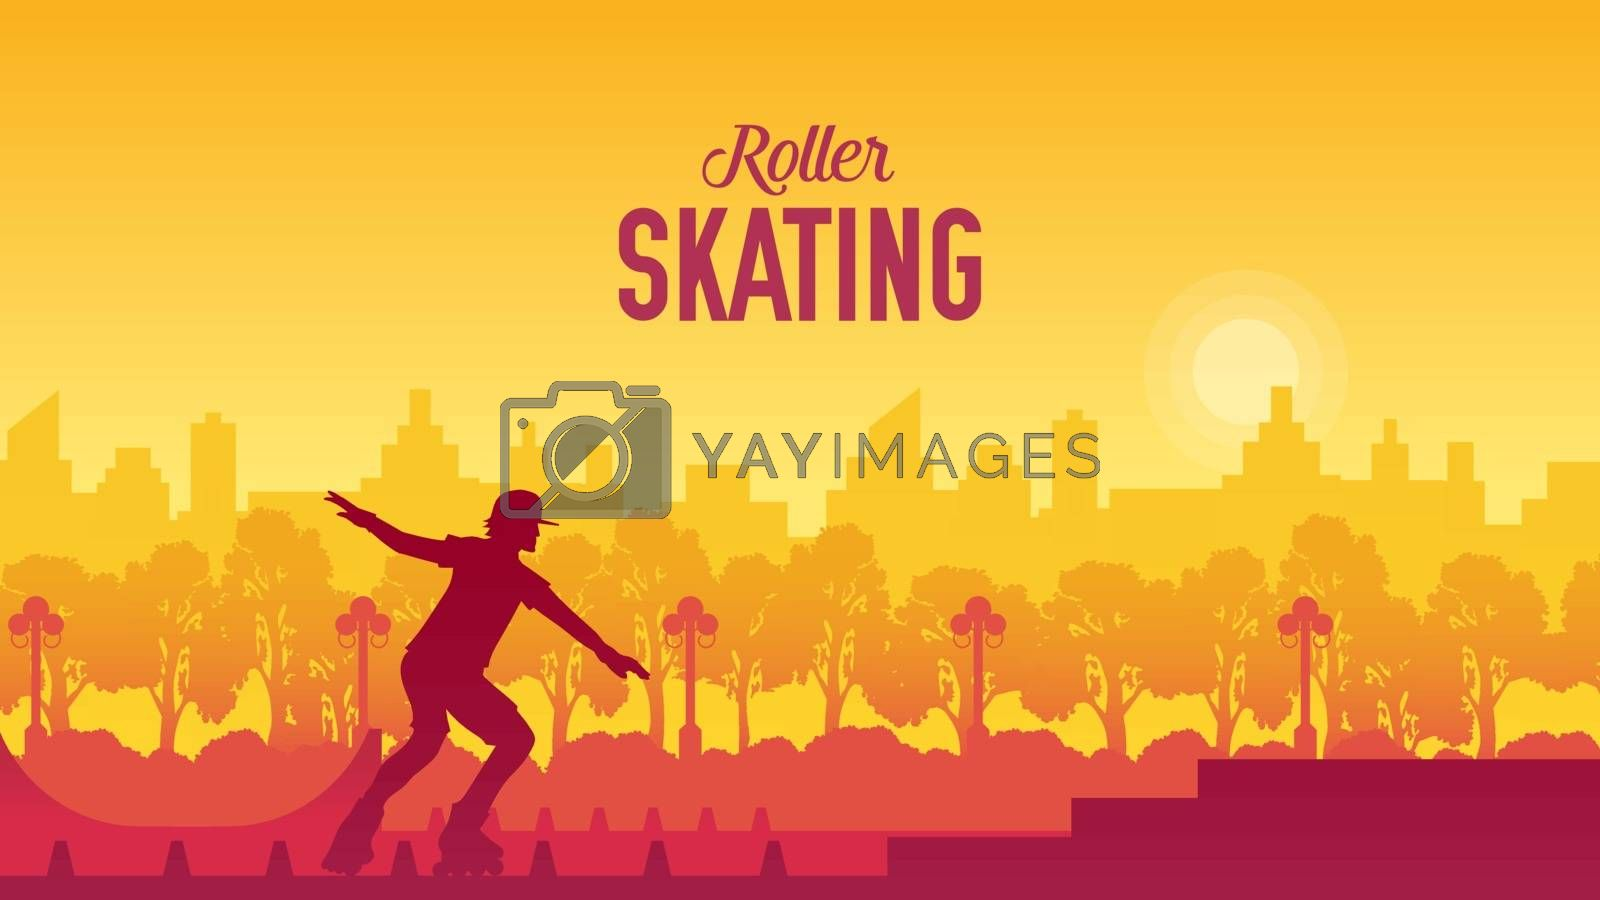 Roller skating in the city park vector illustration. Sport lifestyle design concept. Setting of laces on black roller